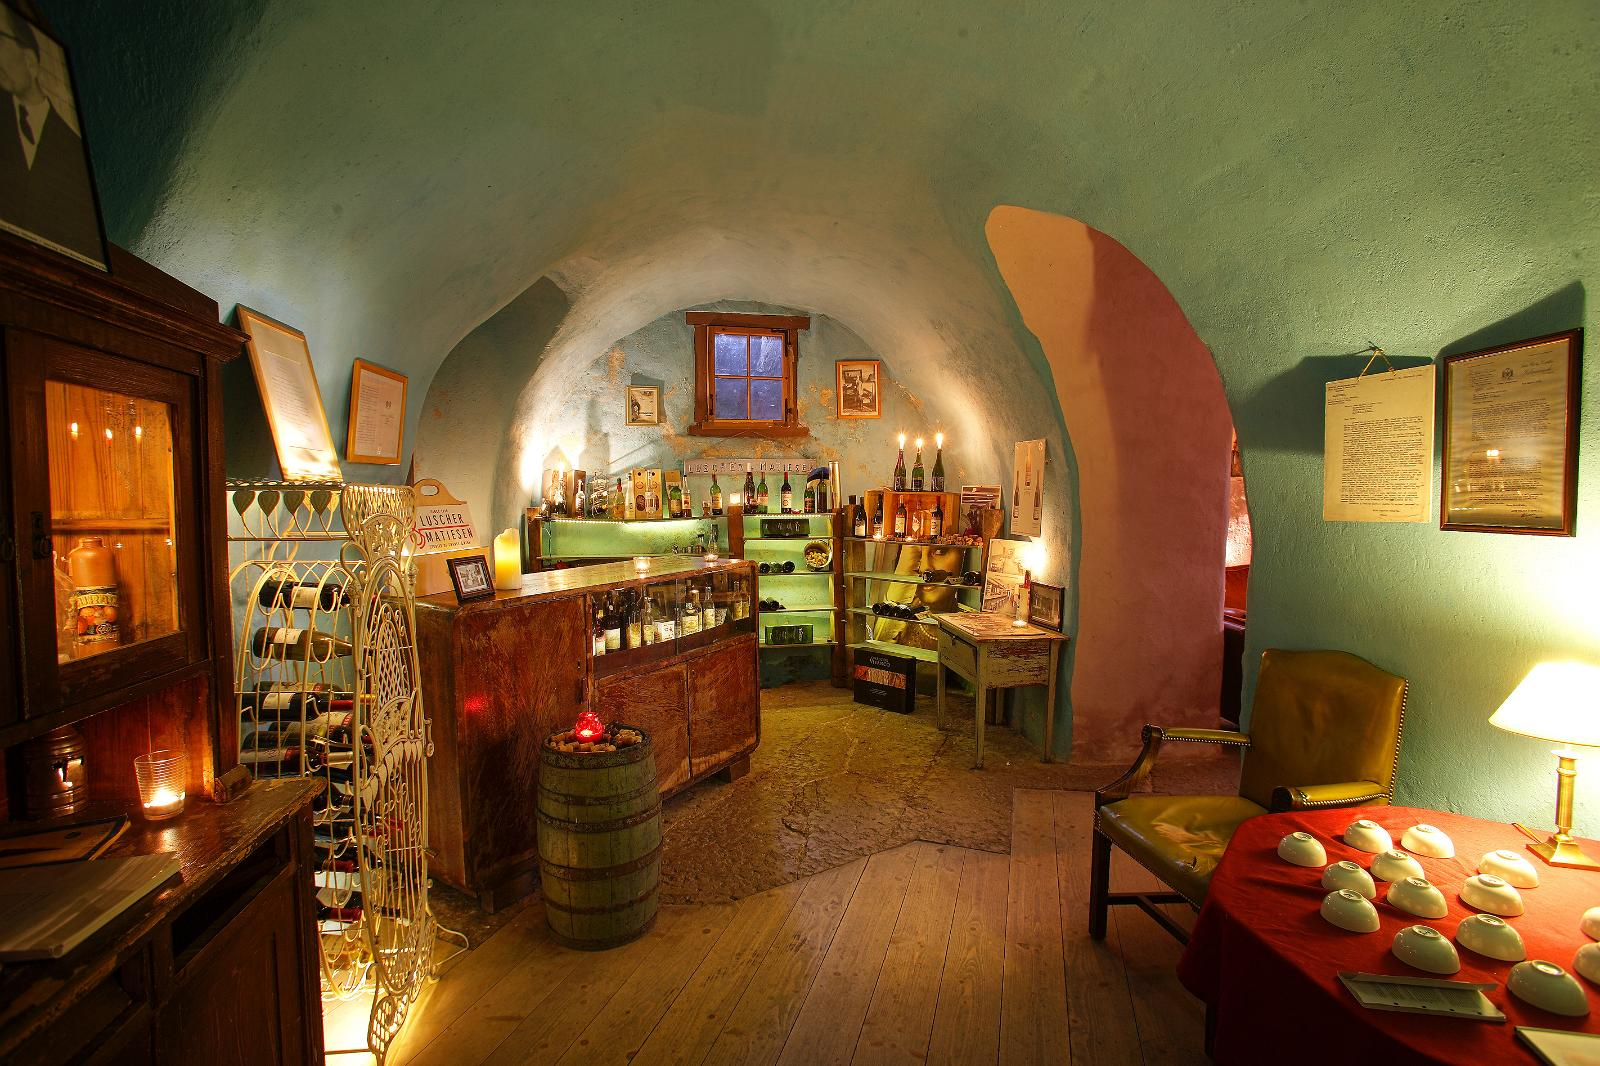 Wine cellar bar in Tallinn old town